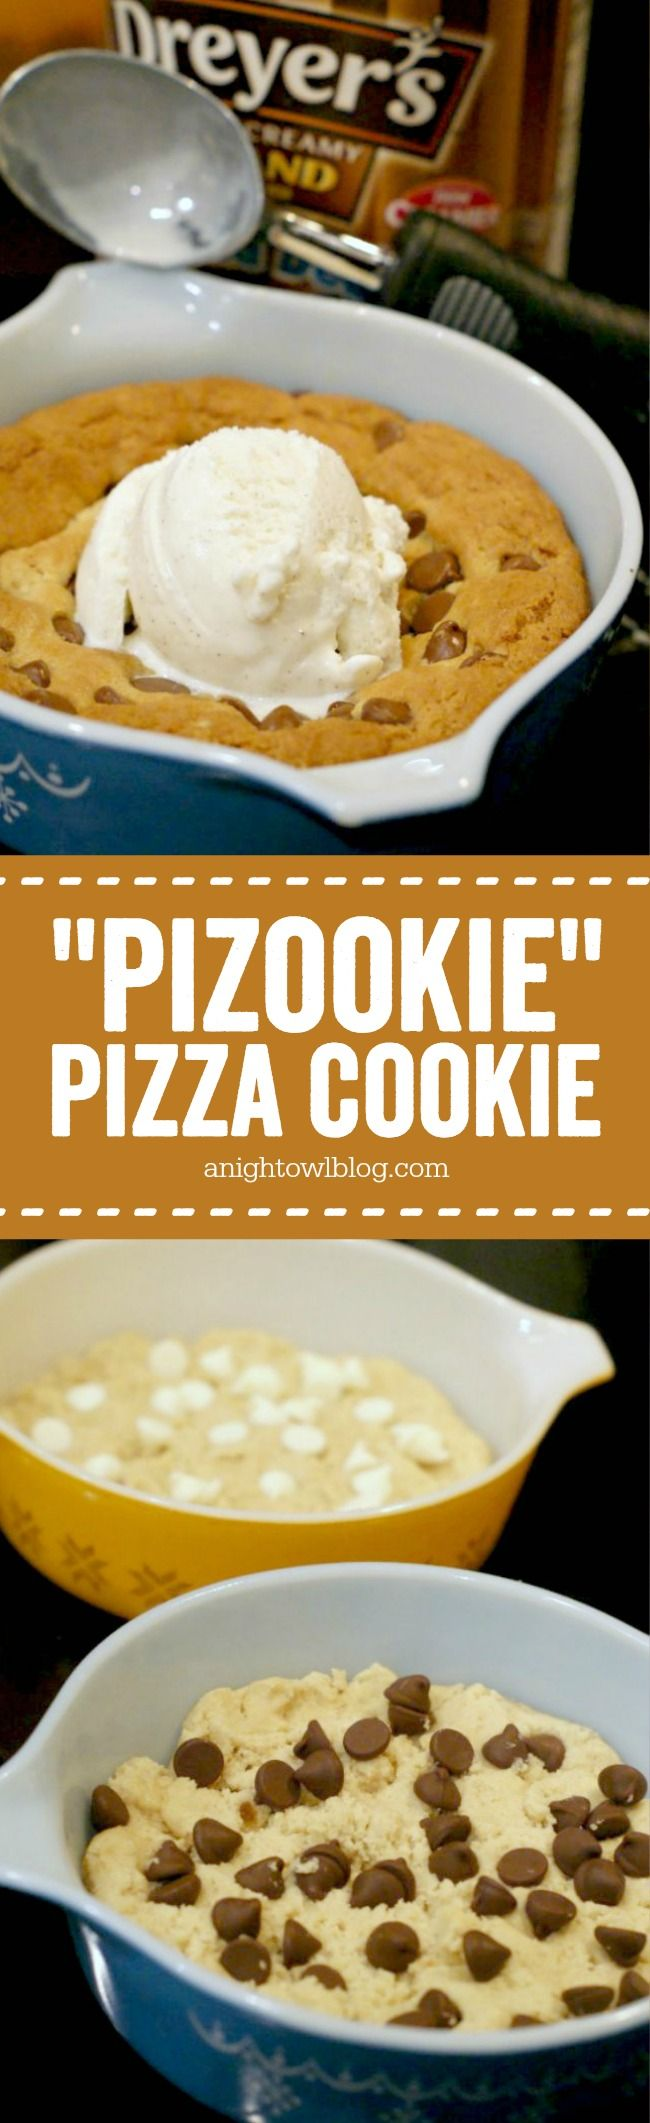 """Learn how to make your own BJ's or Oregano's """"Pizookie"""" Pizza Cookie at home!"""